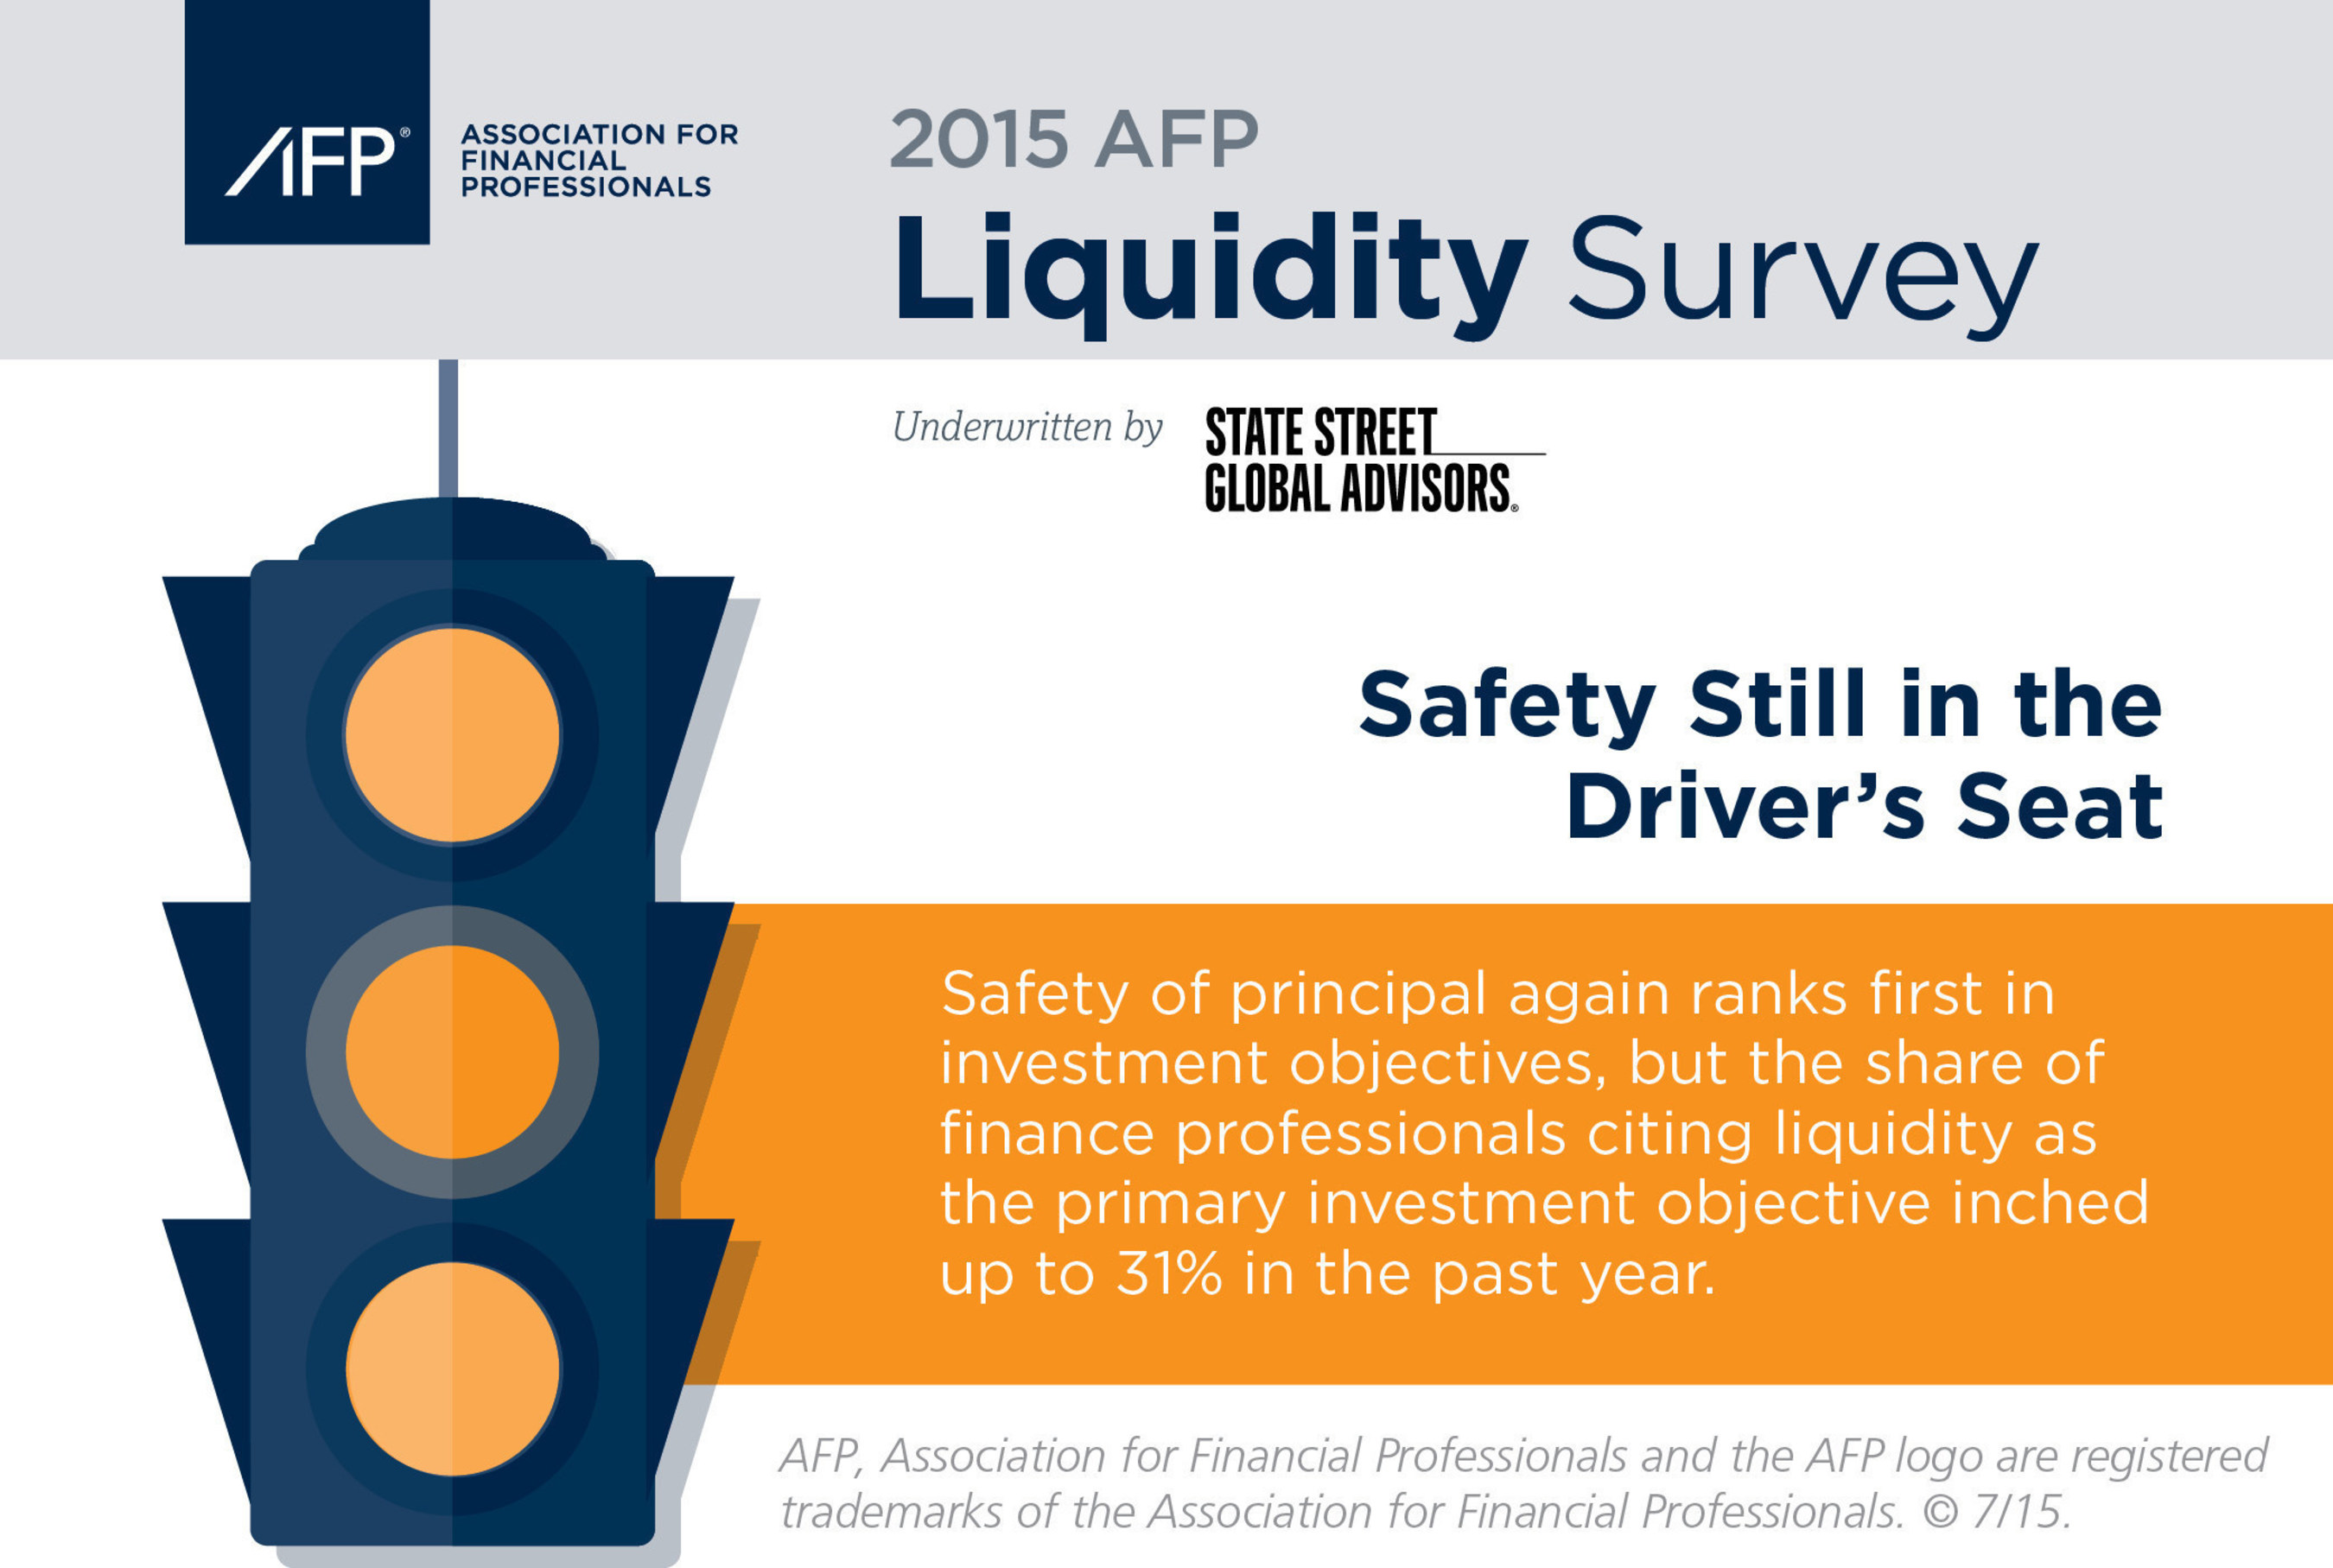 2015 AFP Liquidity Survey reports: Safety Still in the Driver's Seat. Safety ranks first in investment ...